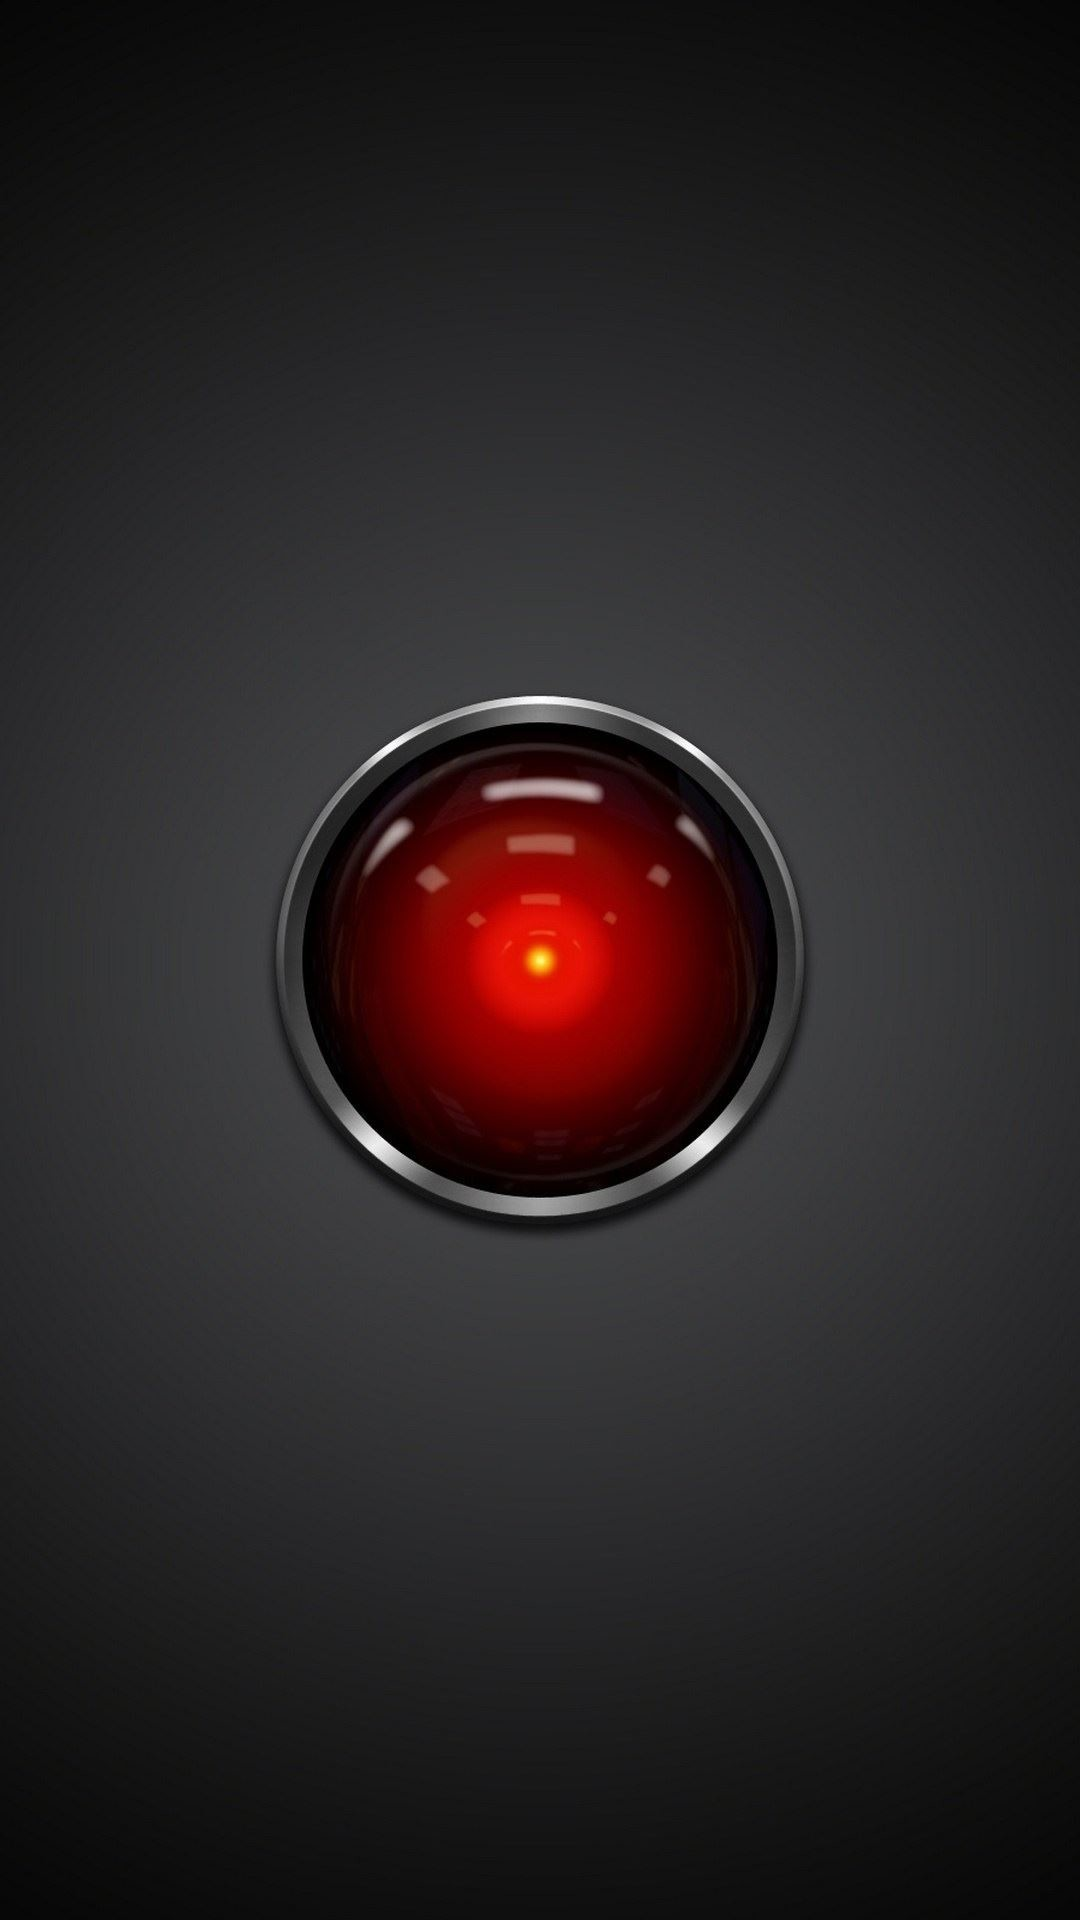 1080x1920 HAL 9000 2001 A Space Odyssey iPhone 6 Plus HD Wallpaper ...